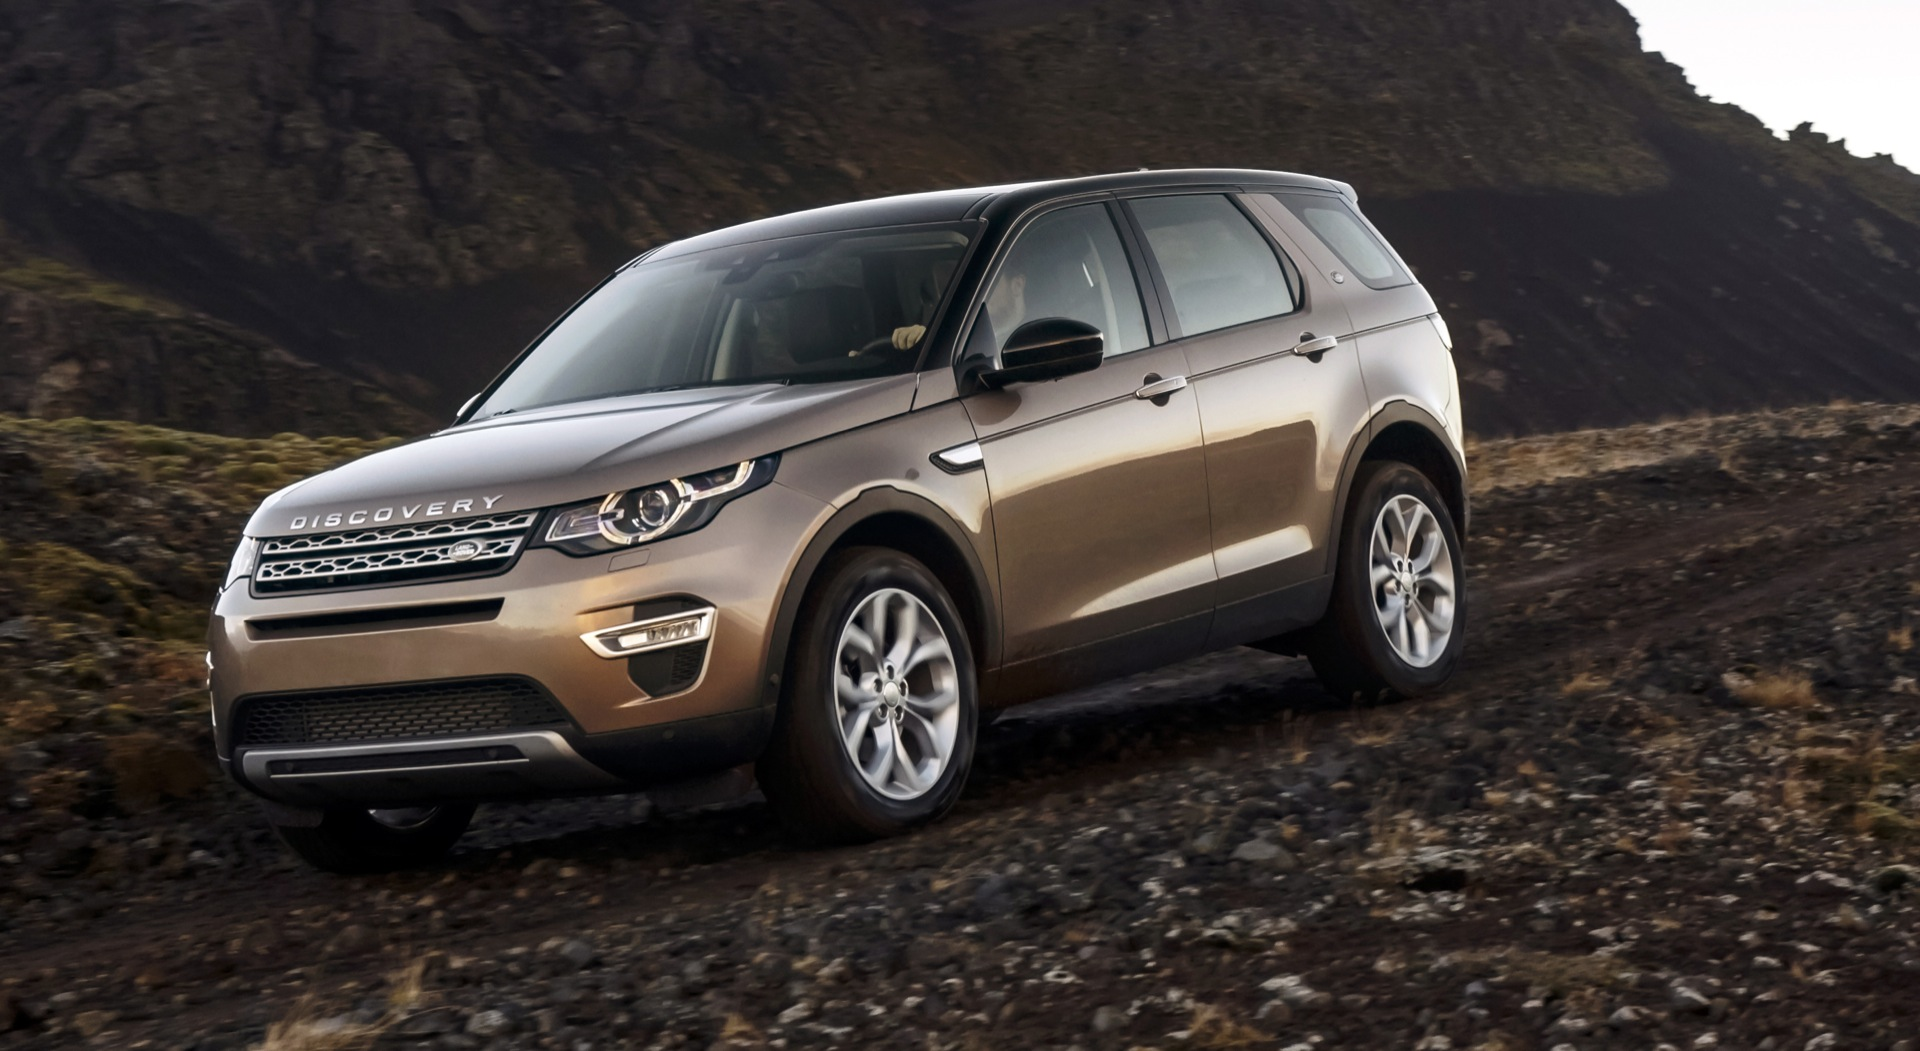 2015 2016 land rover discovery sport recalled to fix exterior lighting. Black Bedroom Furniture Sets. Home Design Ideas